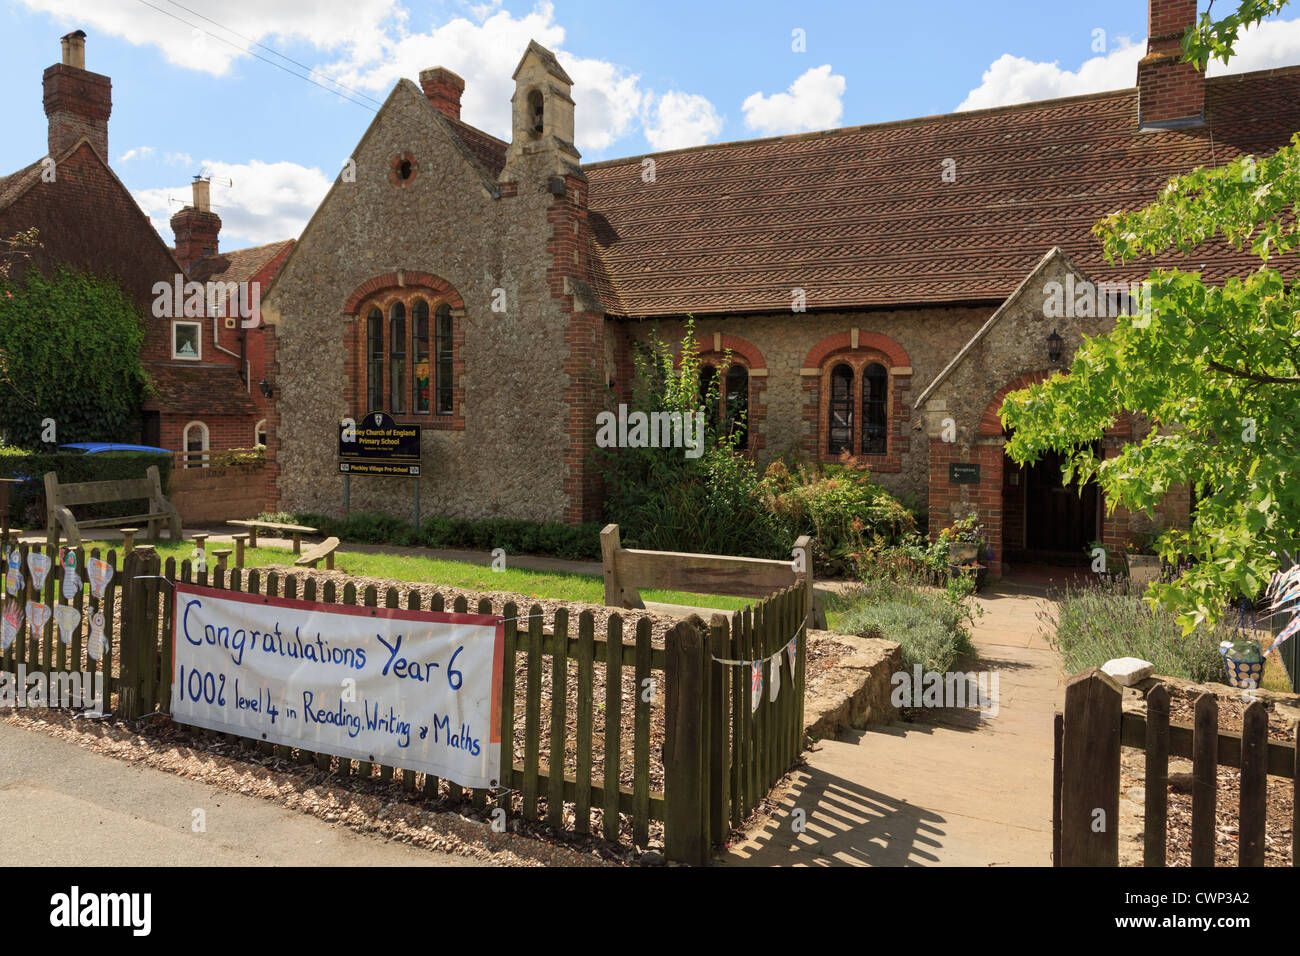 Village Primary School building with sign congratulating year 6 for success in SATS examinations in Pluckley, Kent, - Stock Image